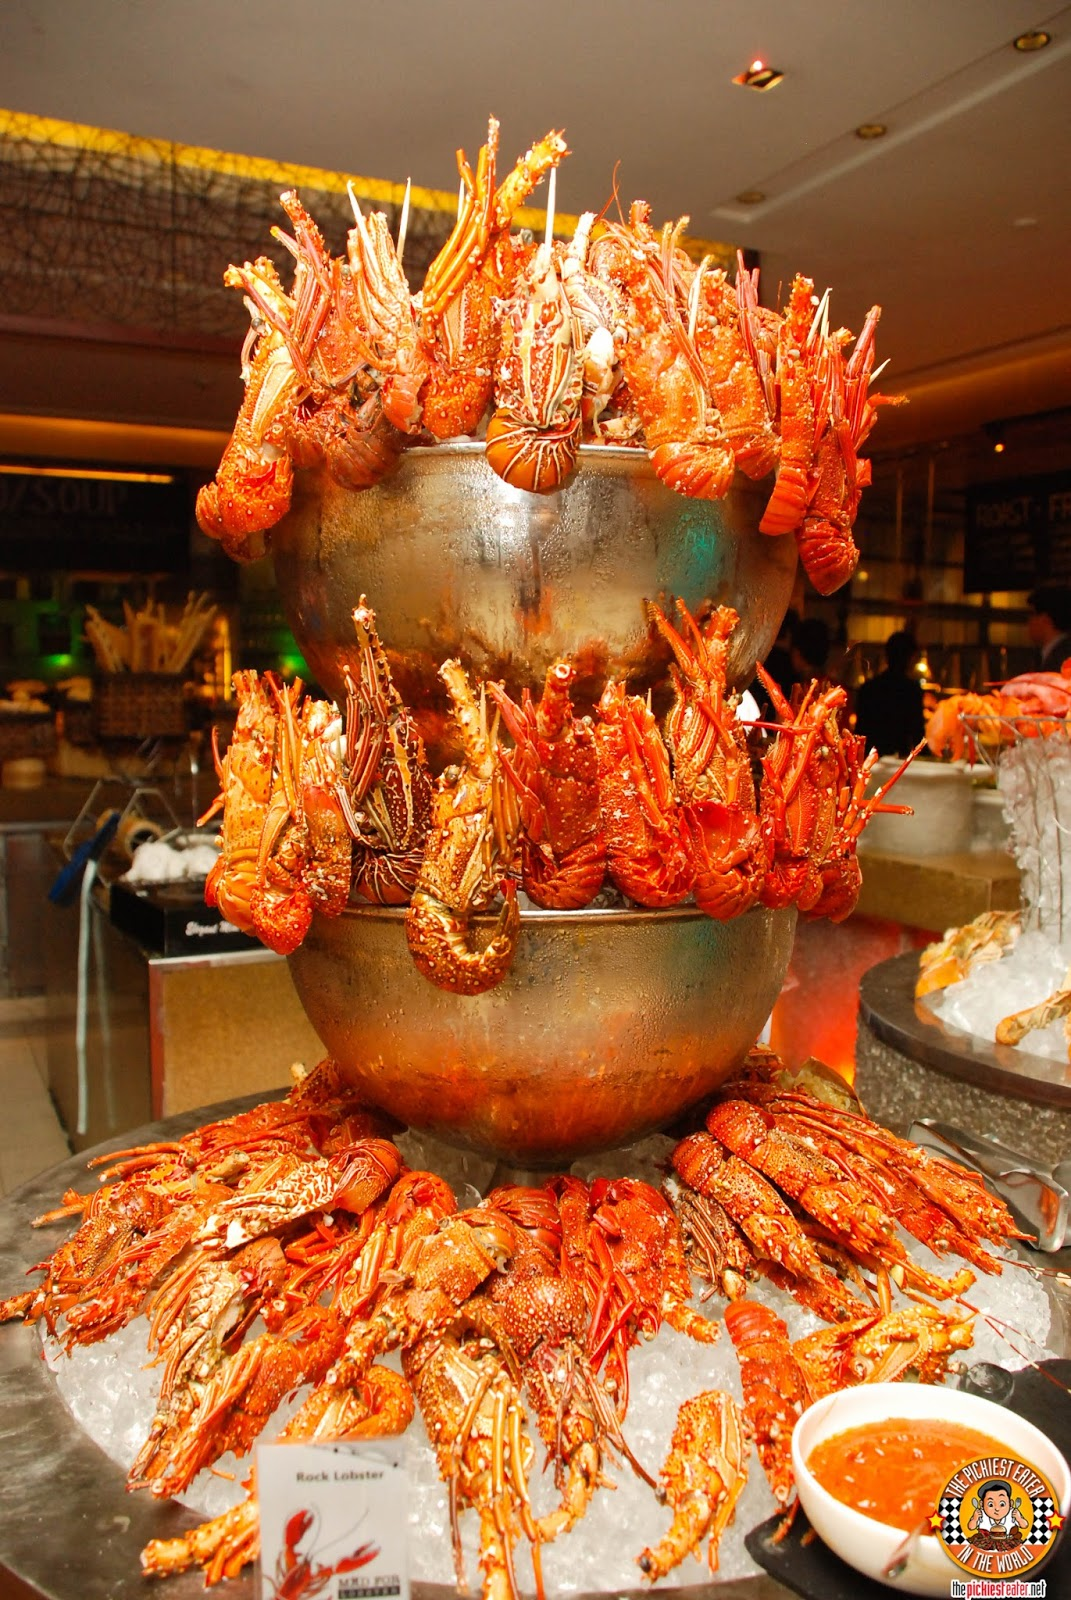 THE PICKIEST EATER IN THE WORLD: THIS IS MADNESS! THIS IS MAD FOR LOBSTER AT EDSA SHANGRI-LA'S ...